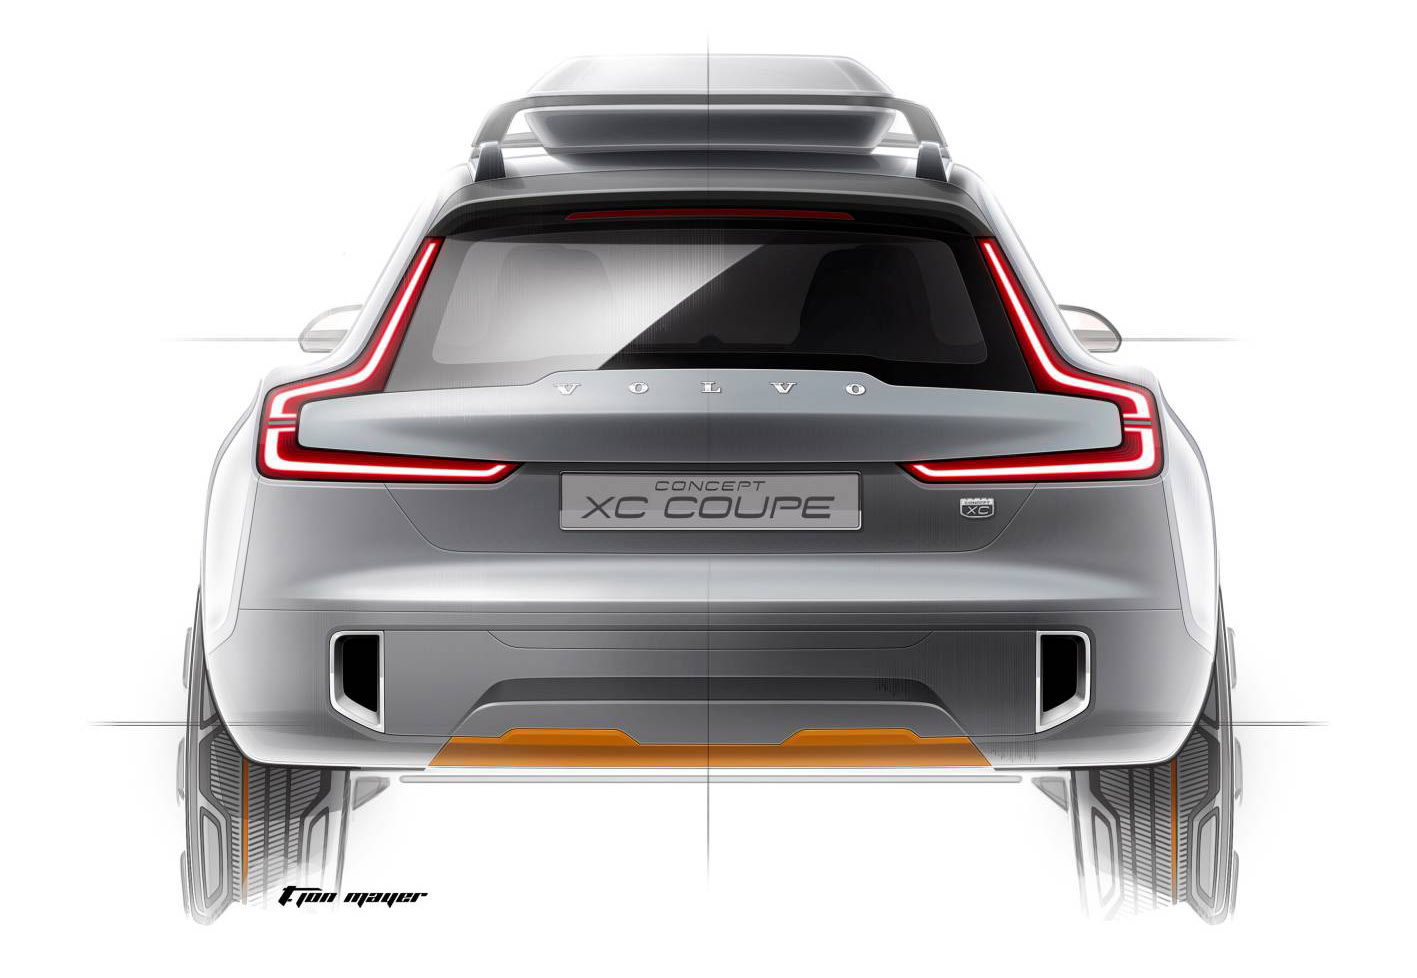 Volvo XC Coupe Concept Teased, Previews New SUV Styling